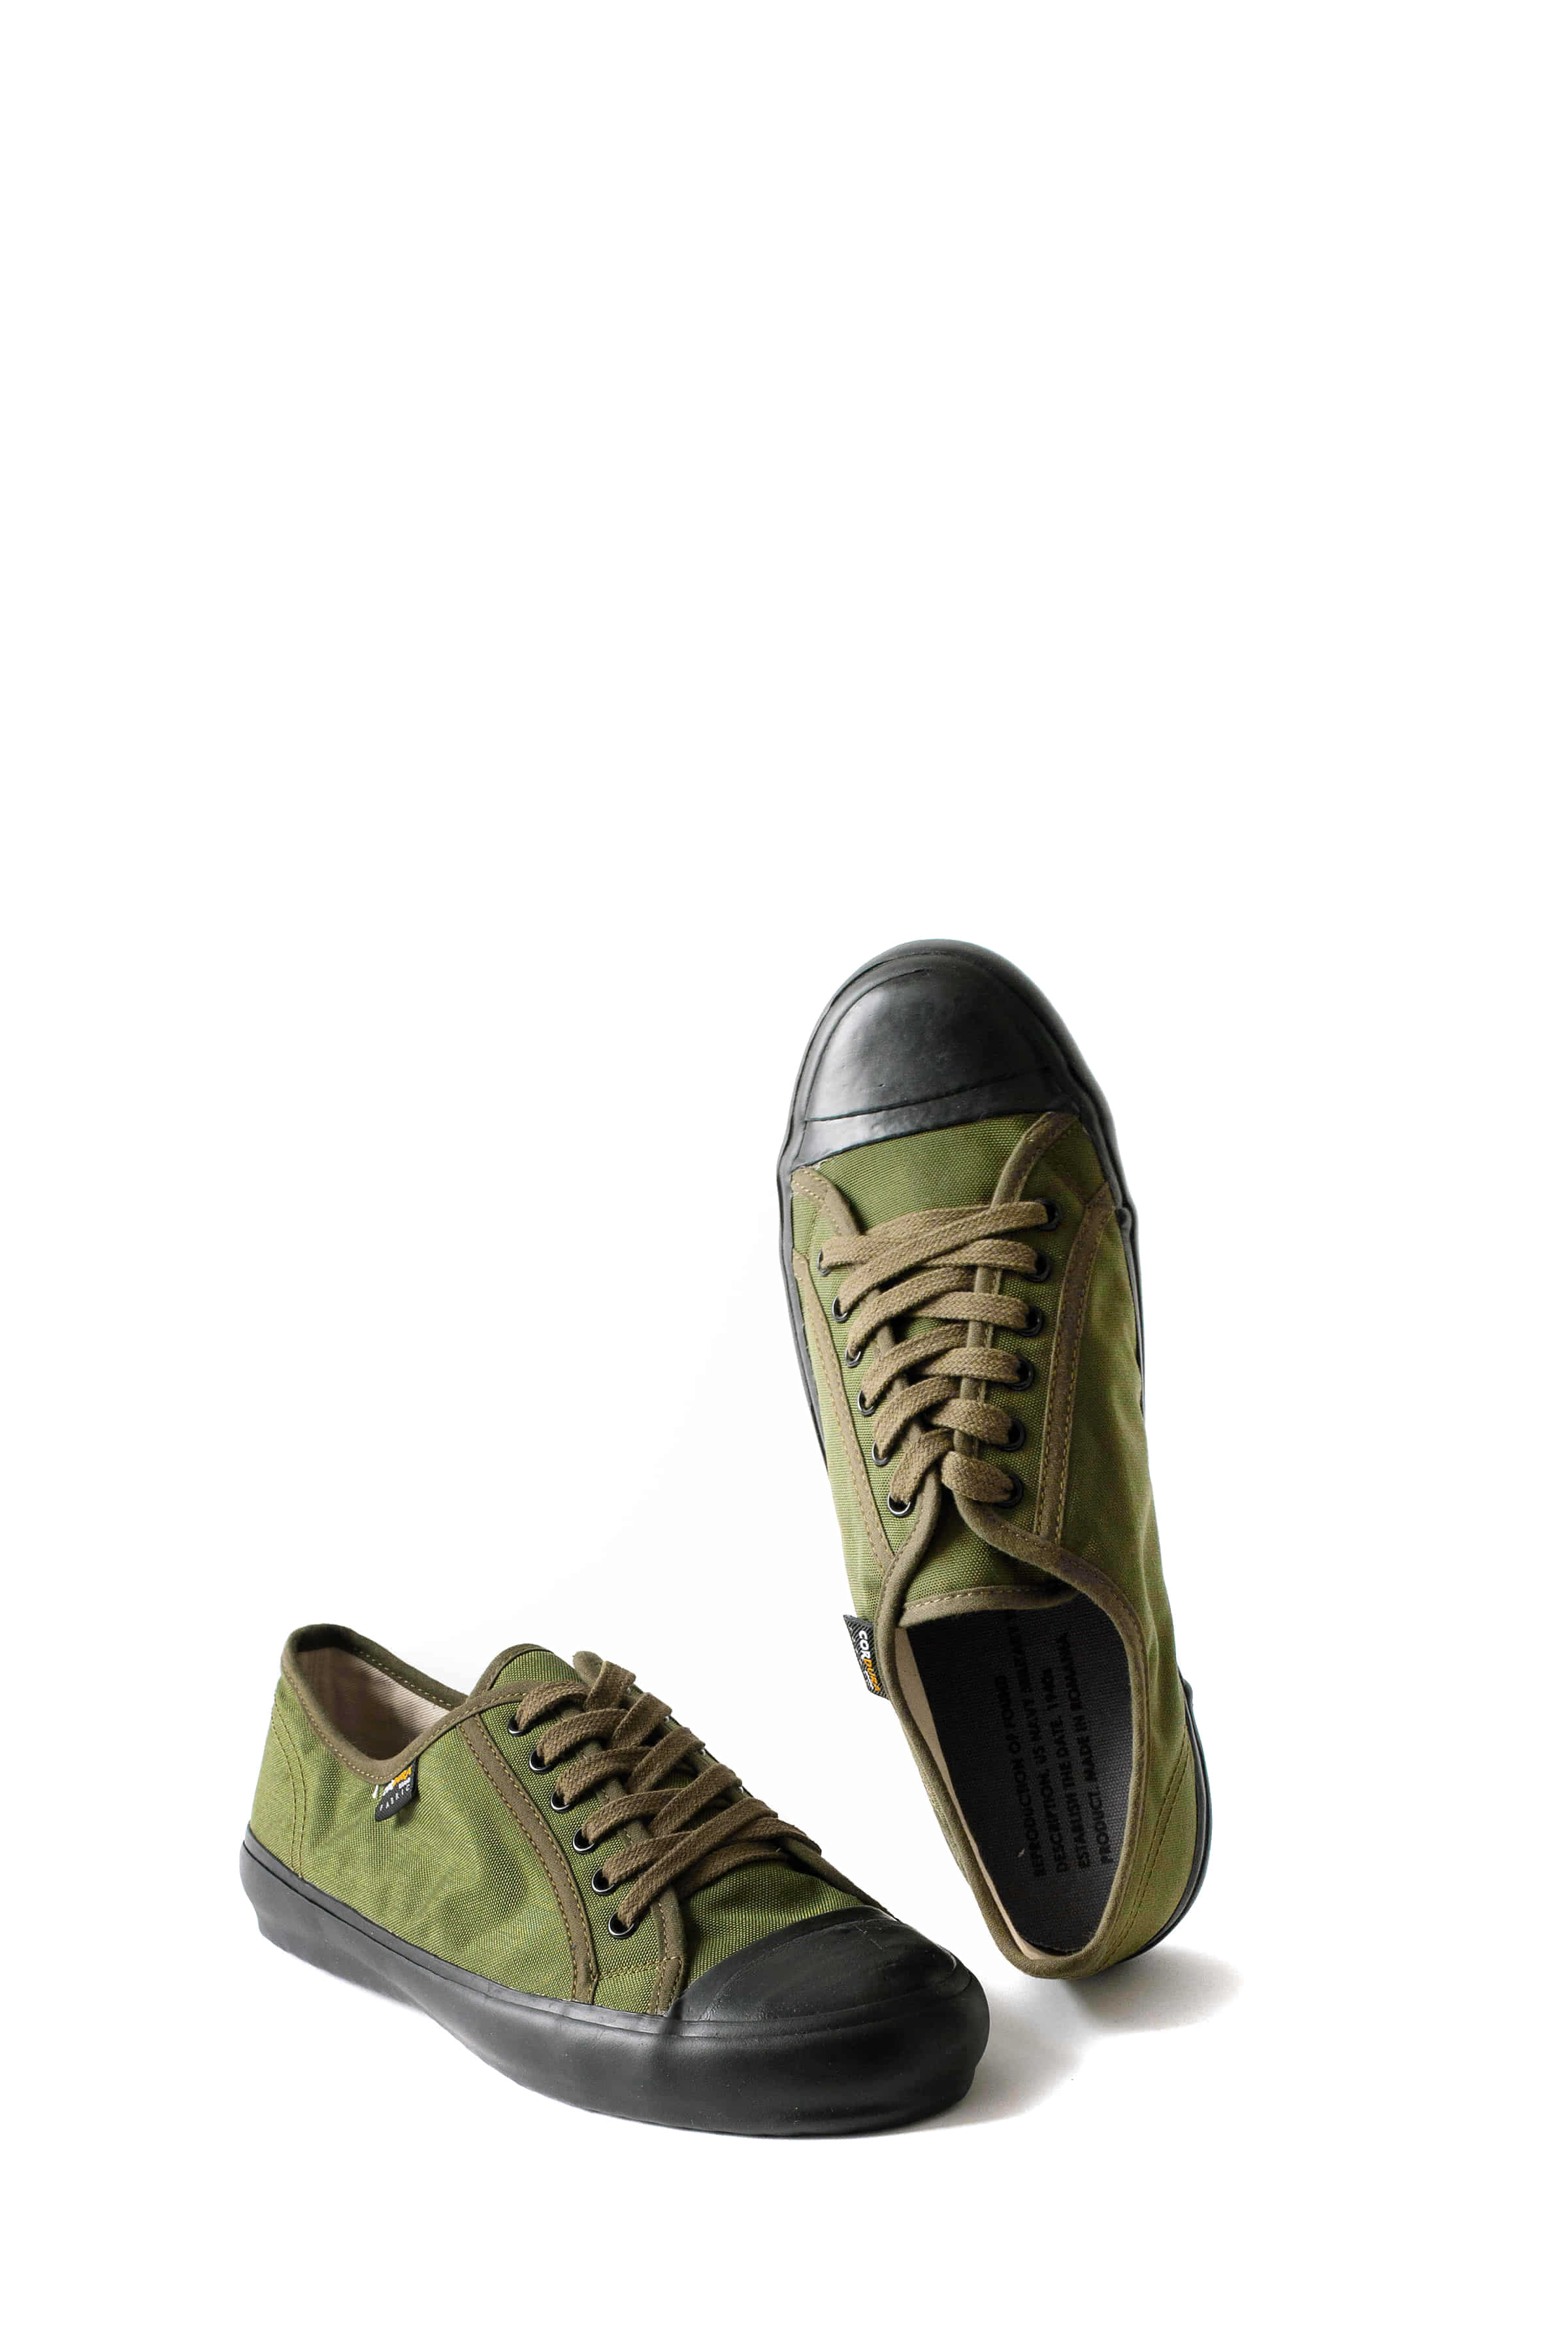 REPRODUCTION OF FOUND : US Navy Military Trainer 5500 (Olive)